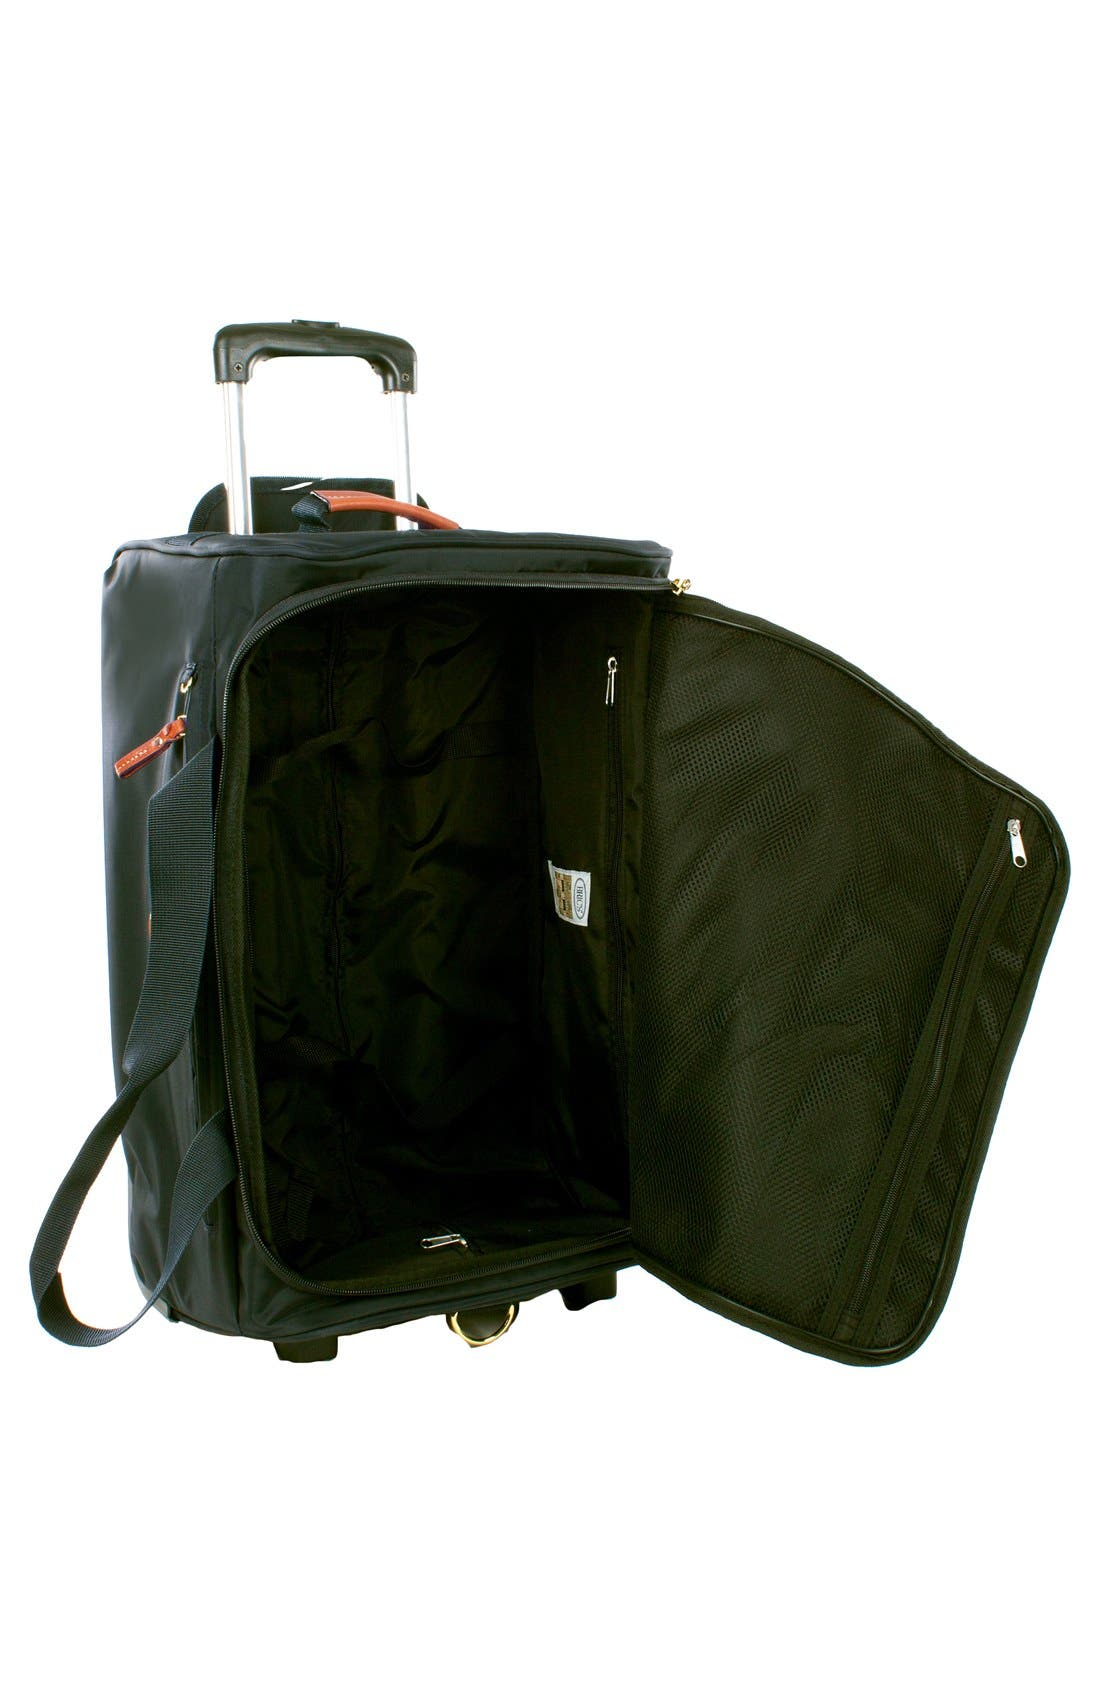 Alternate Image 3  - Bric's X-Bag 21-Inch Rolling Carry-On Duffel Bag